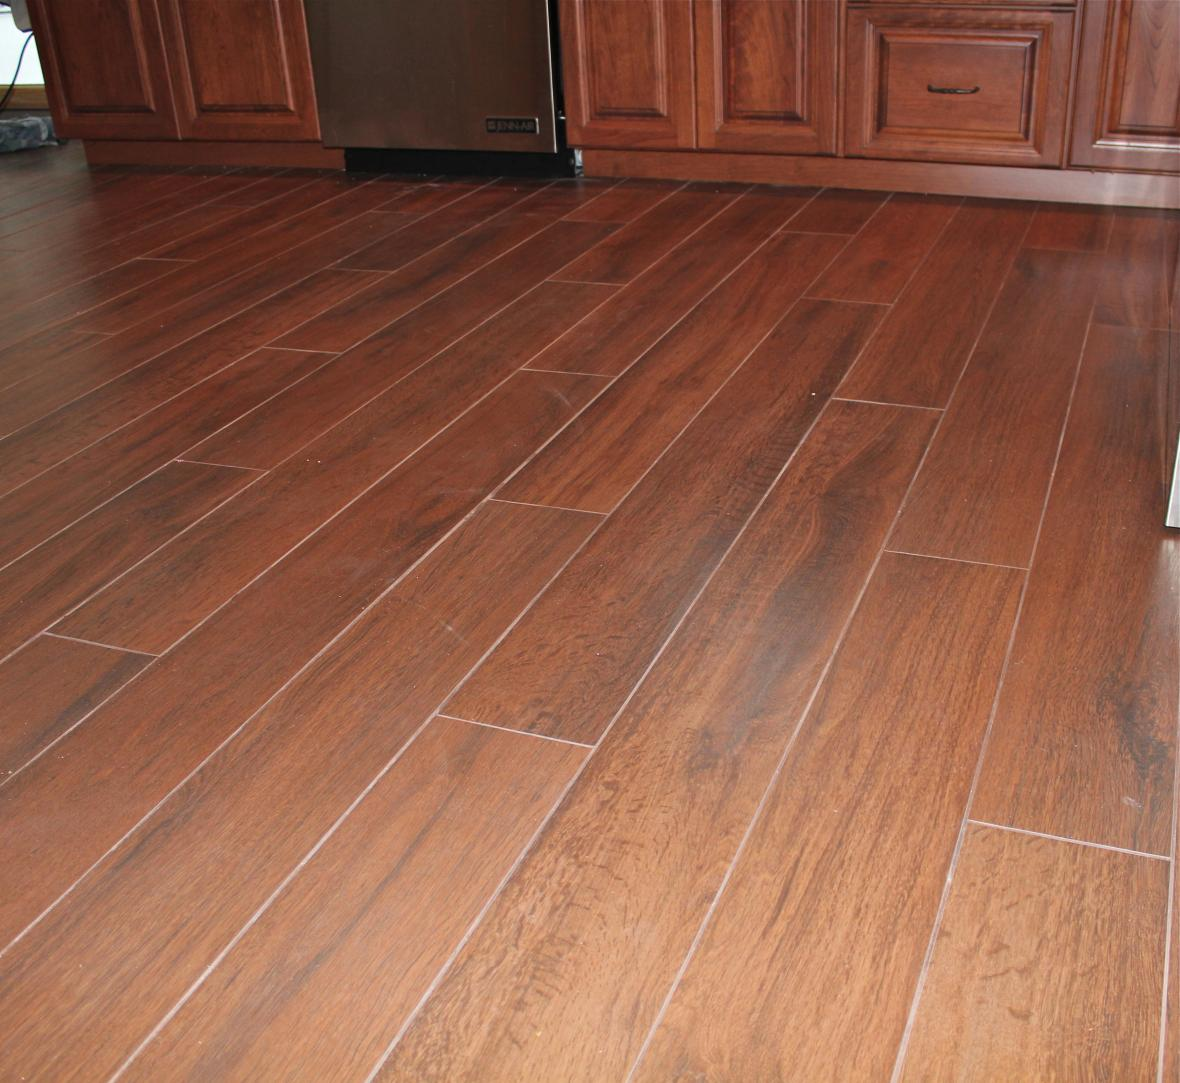 More About Wood Tile Kitchen Floor Tile Wood Kitchen Floor